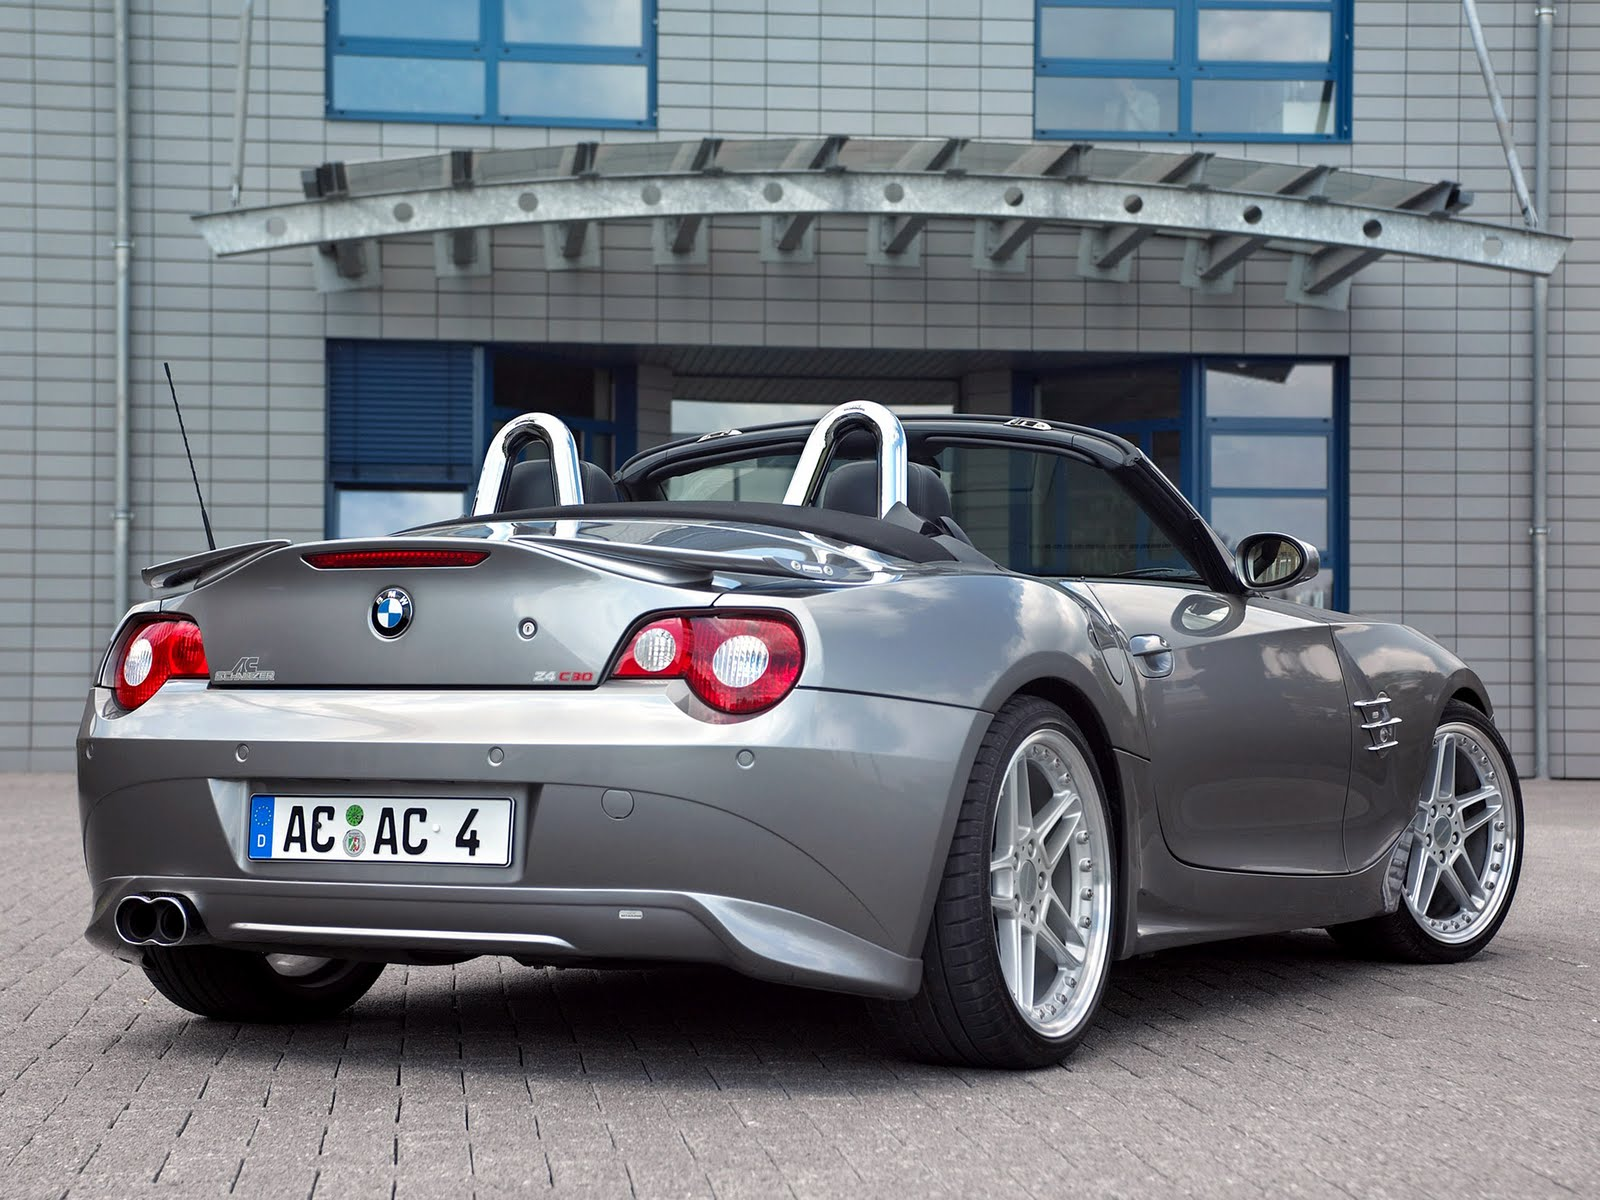 car au bmw z4 used and new cars from australia car. Black Bedroom Furniture Sets. Home Design Ideas